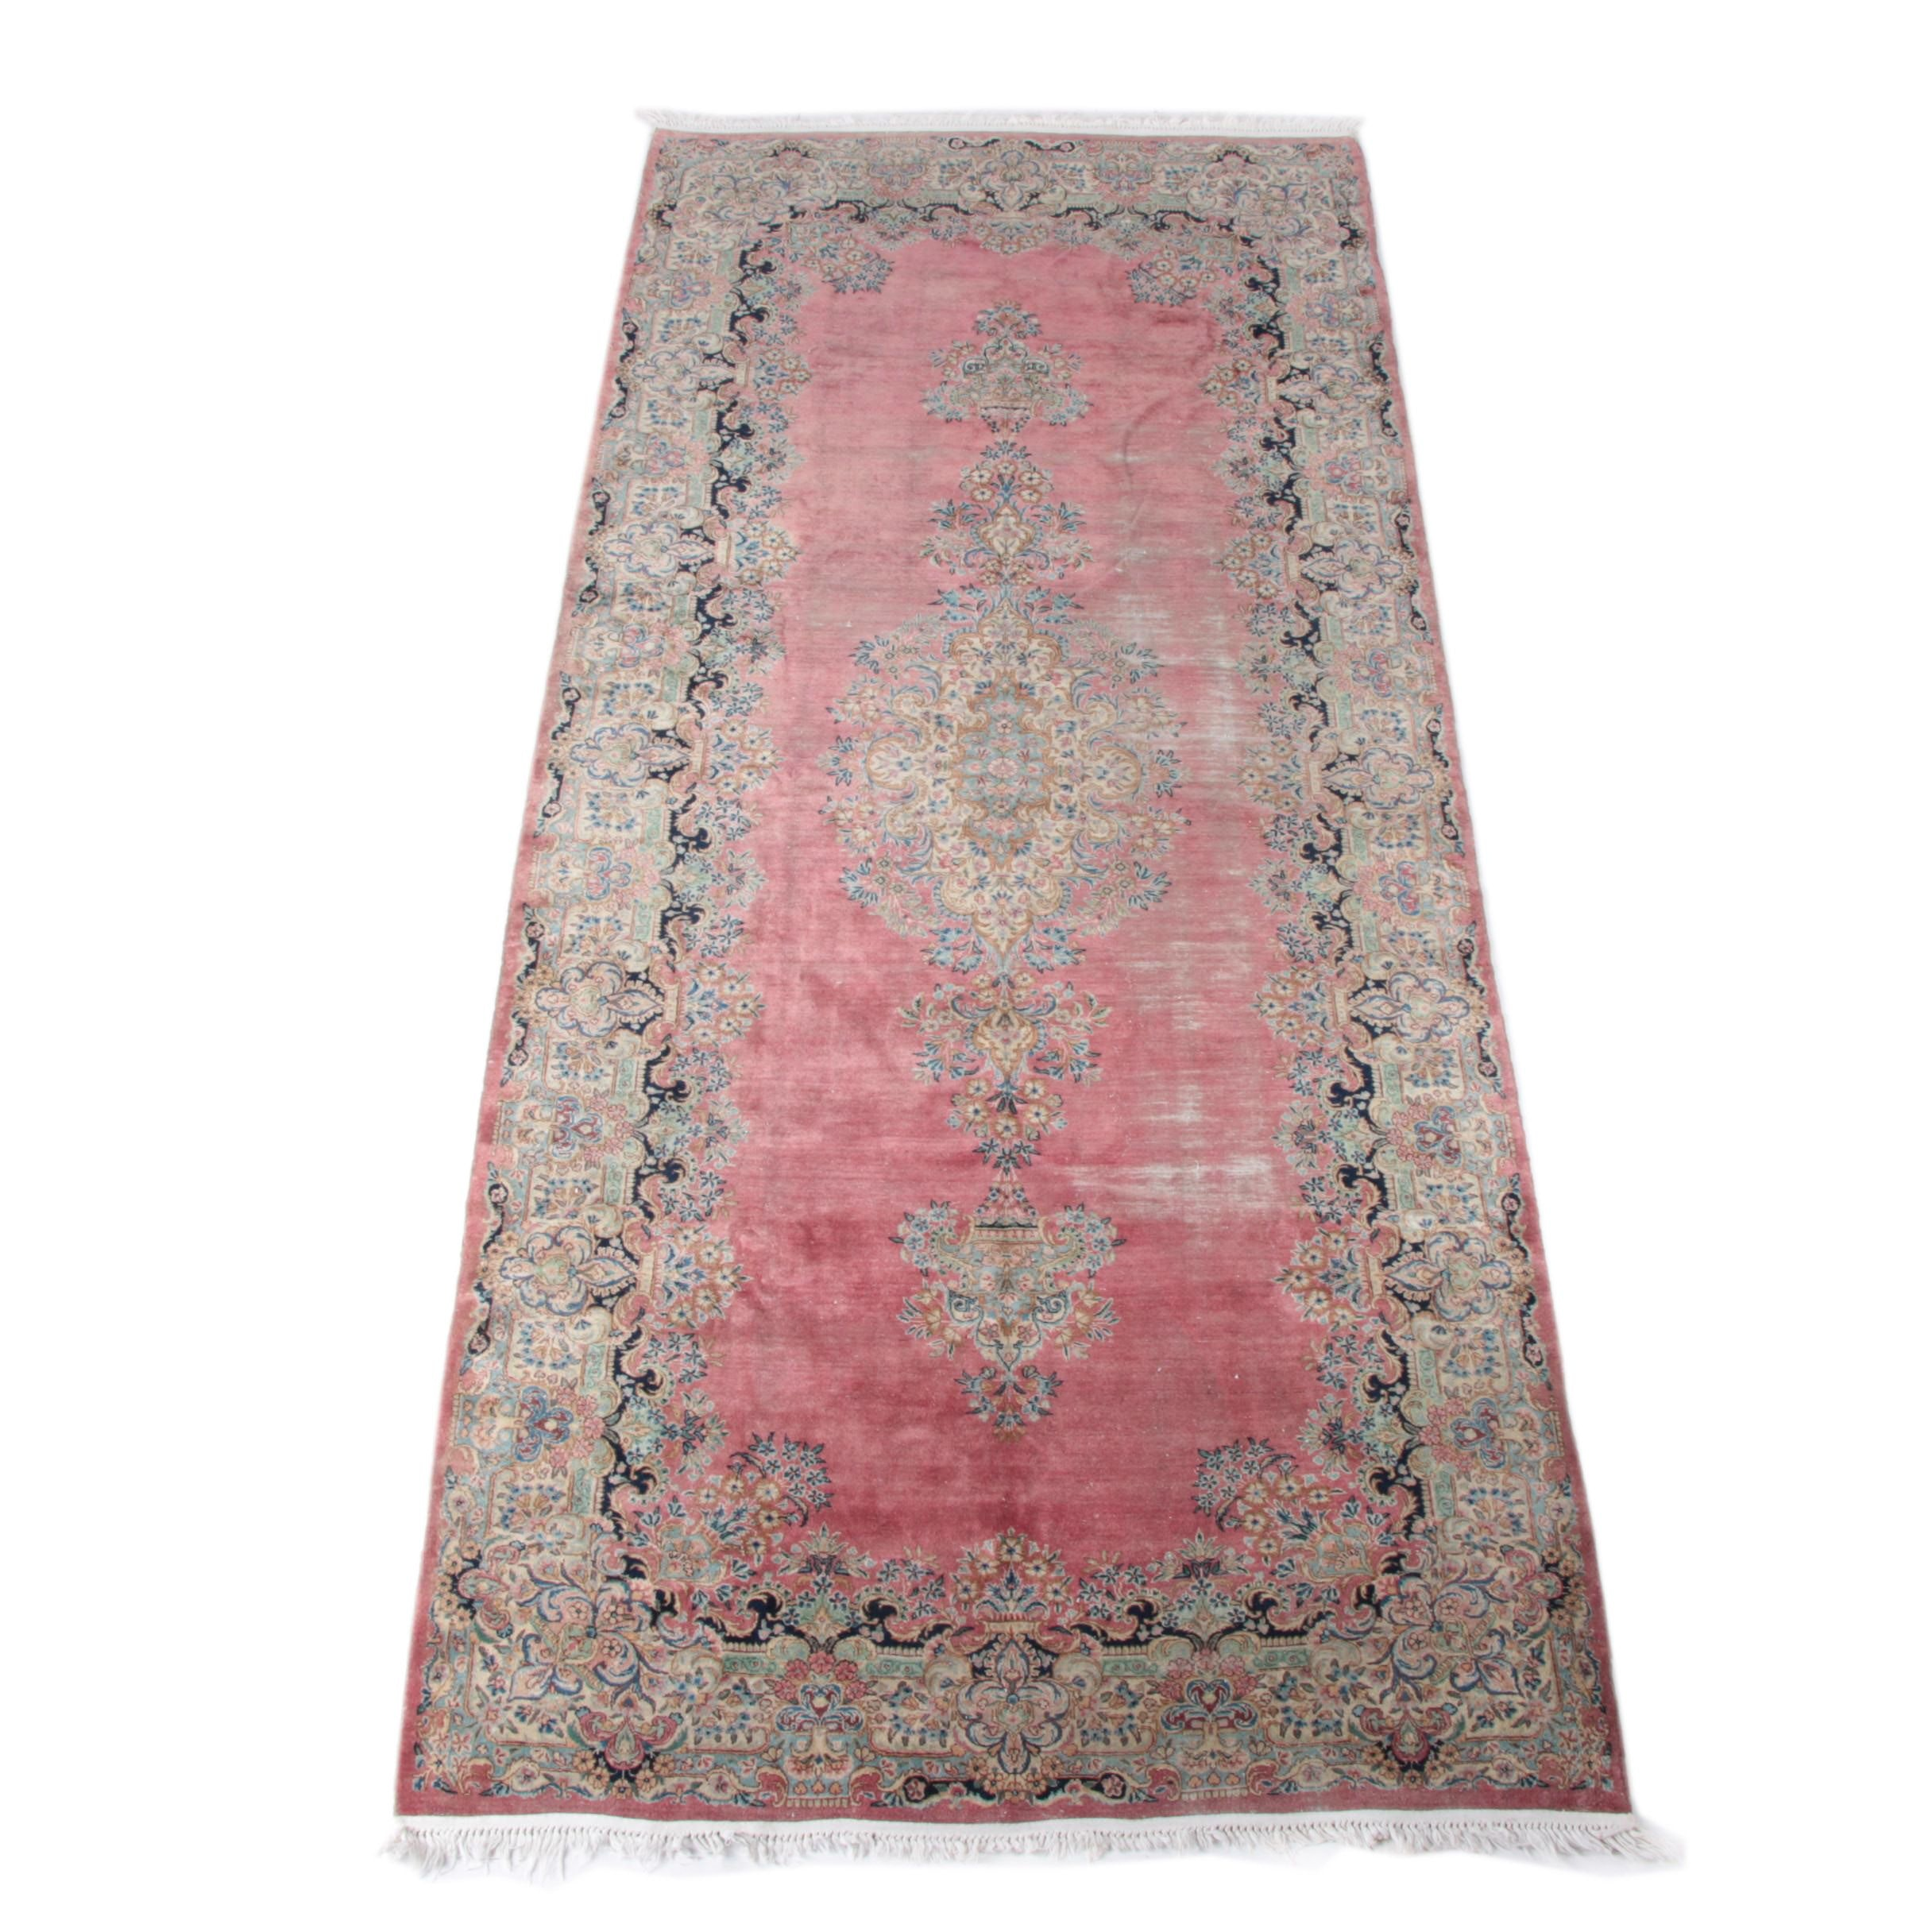 Semi-Antique Hand-Knotted Persian Kerman Long Rug